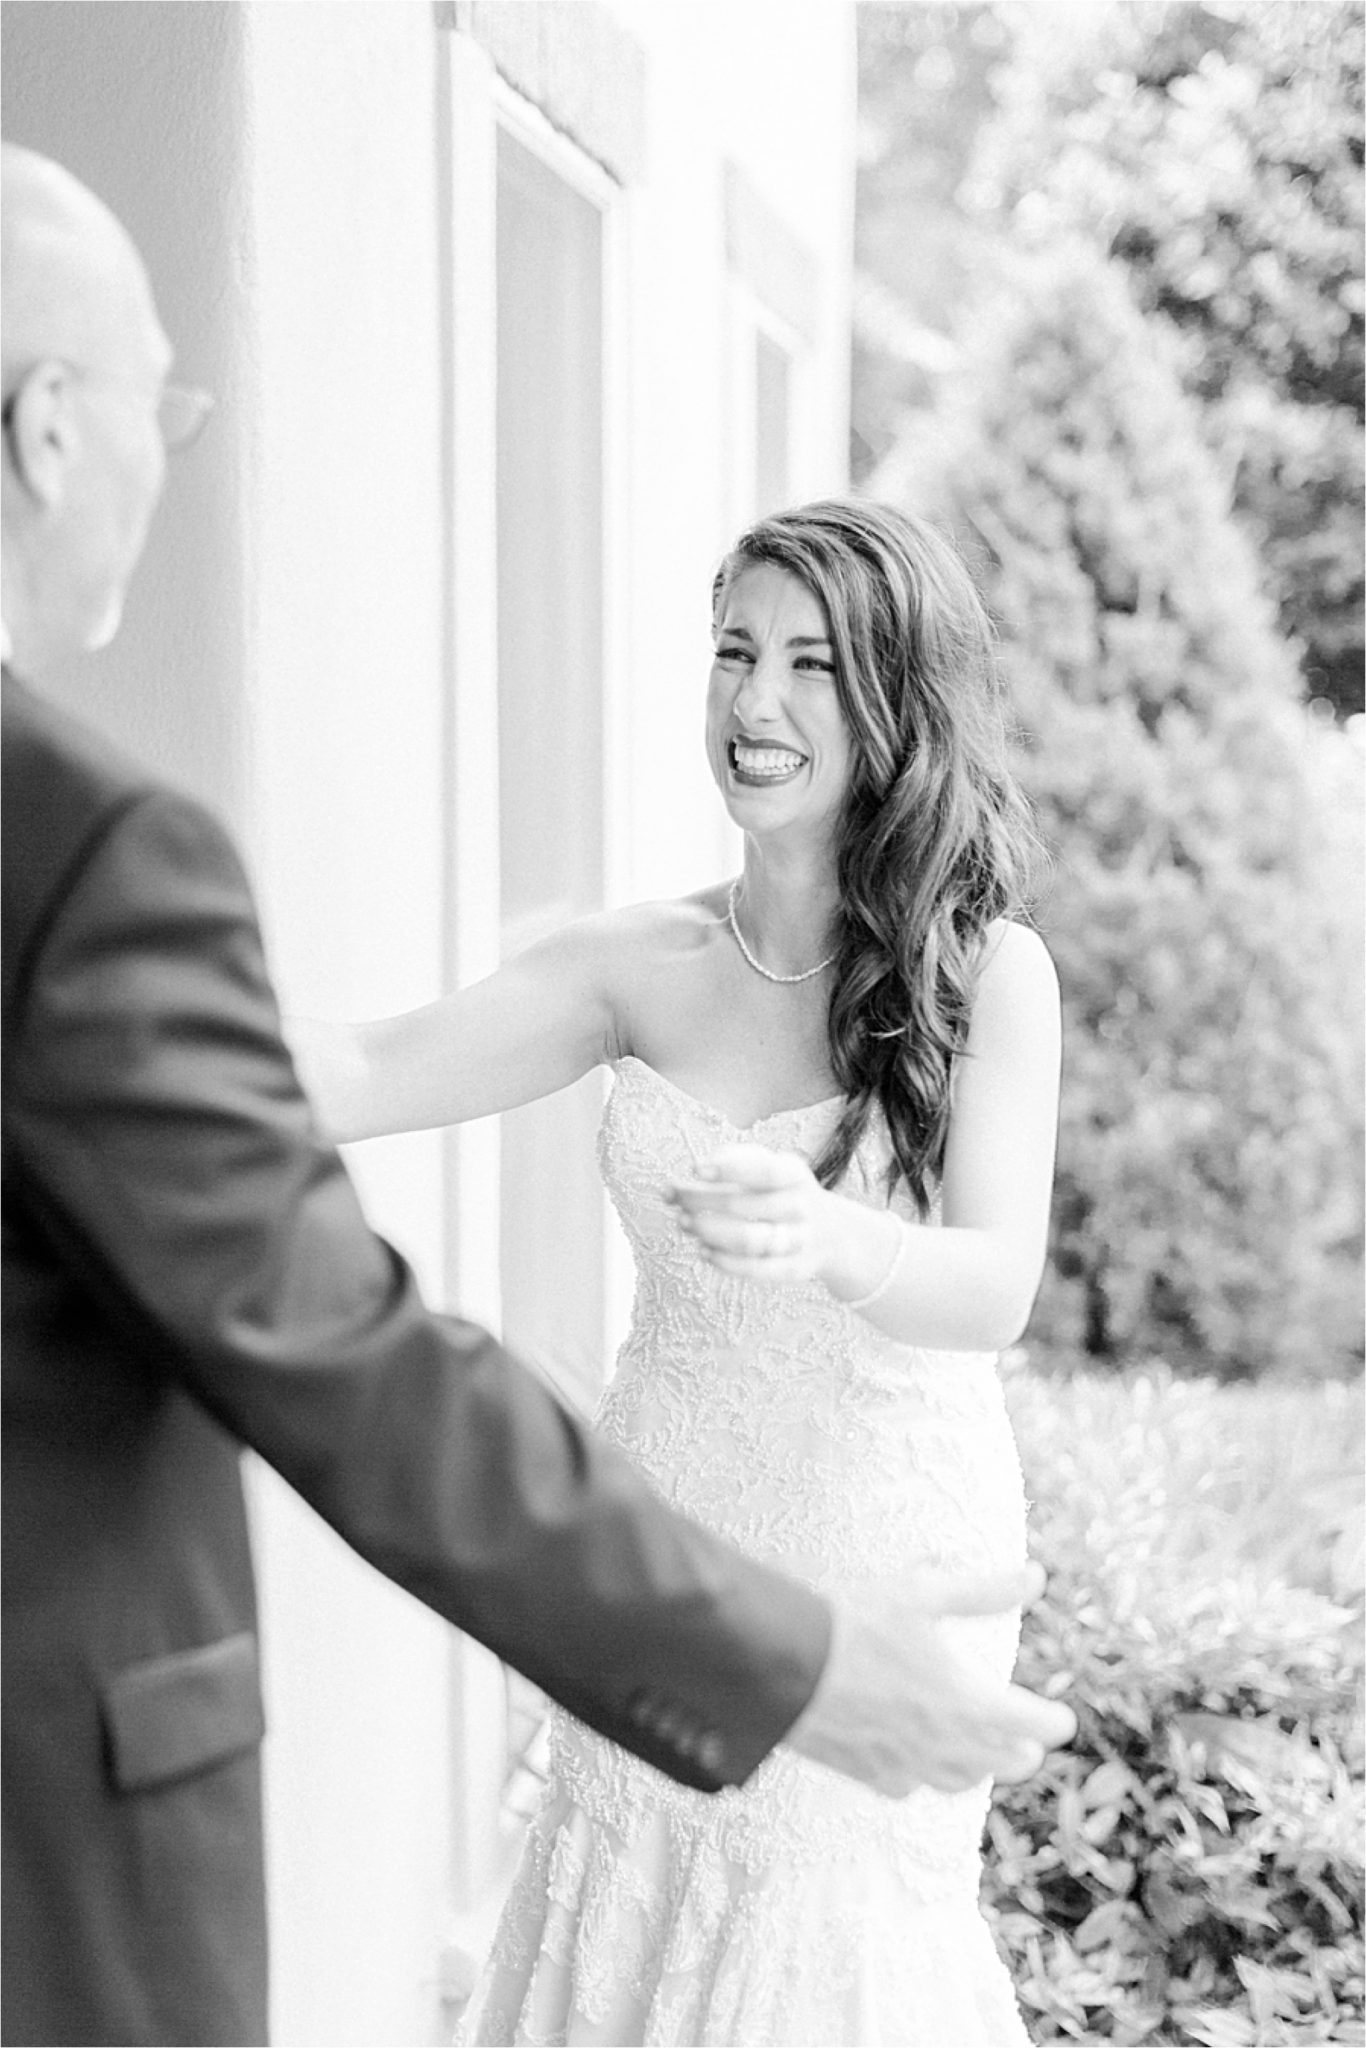 Daddy-daughter-first-look-bride to be-wedding day-precious moments